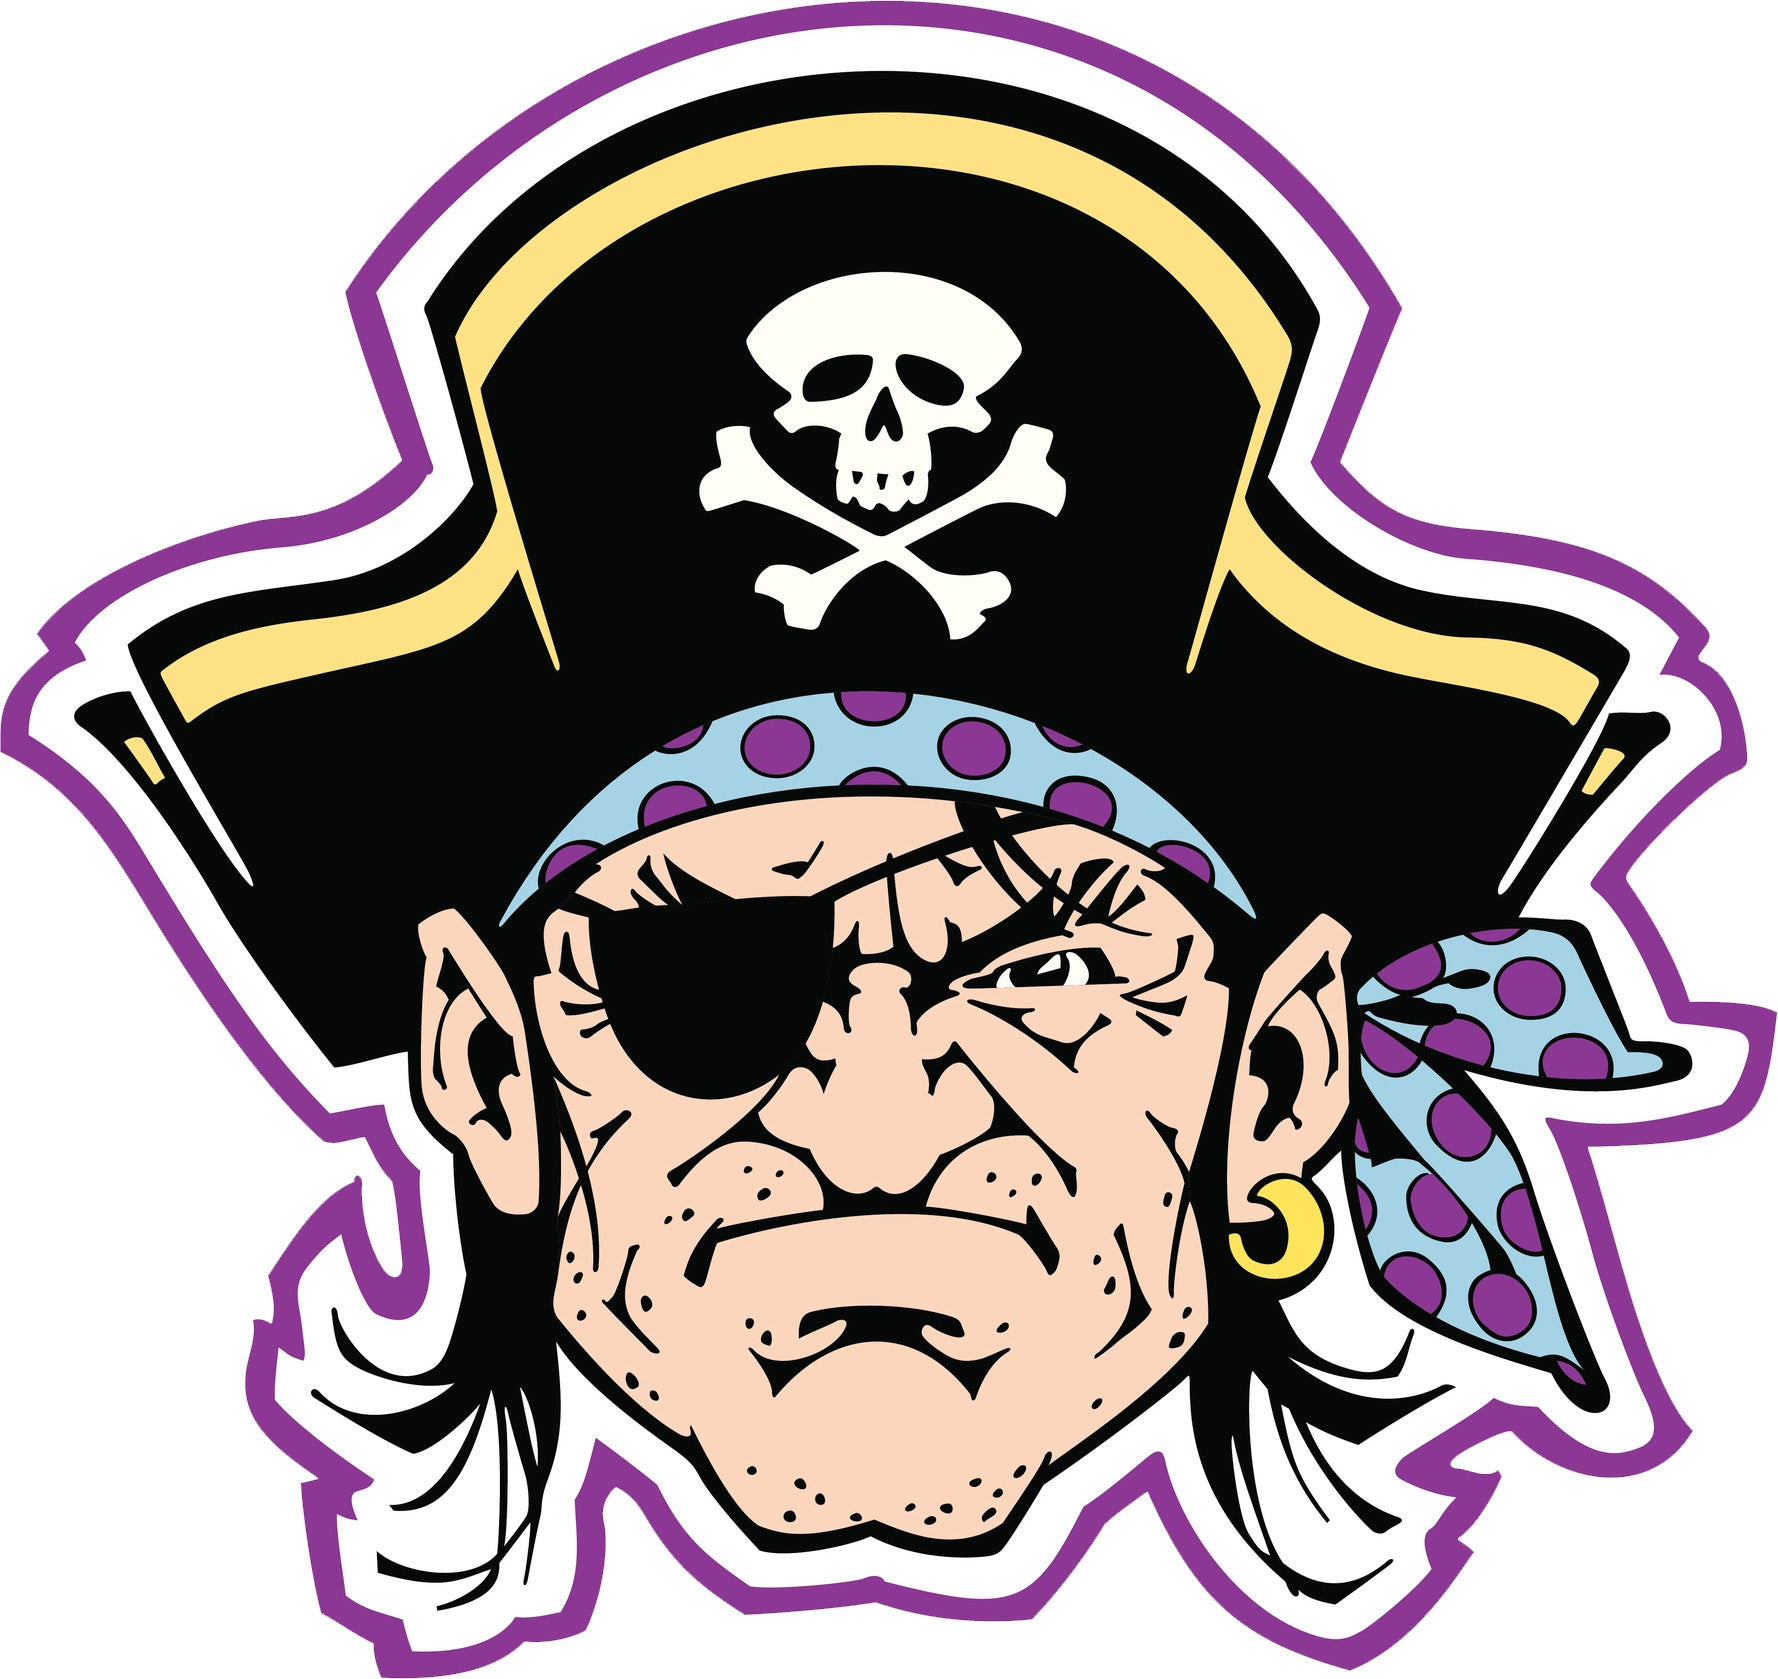 Tough Pirate Captain with Eye Patch Cartoon Vinyl Decal Sticker